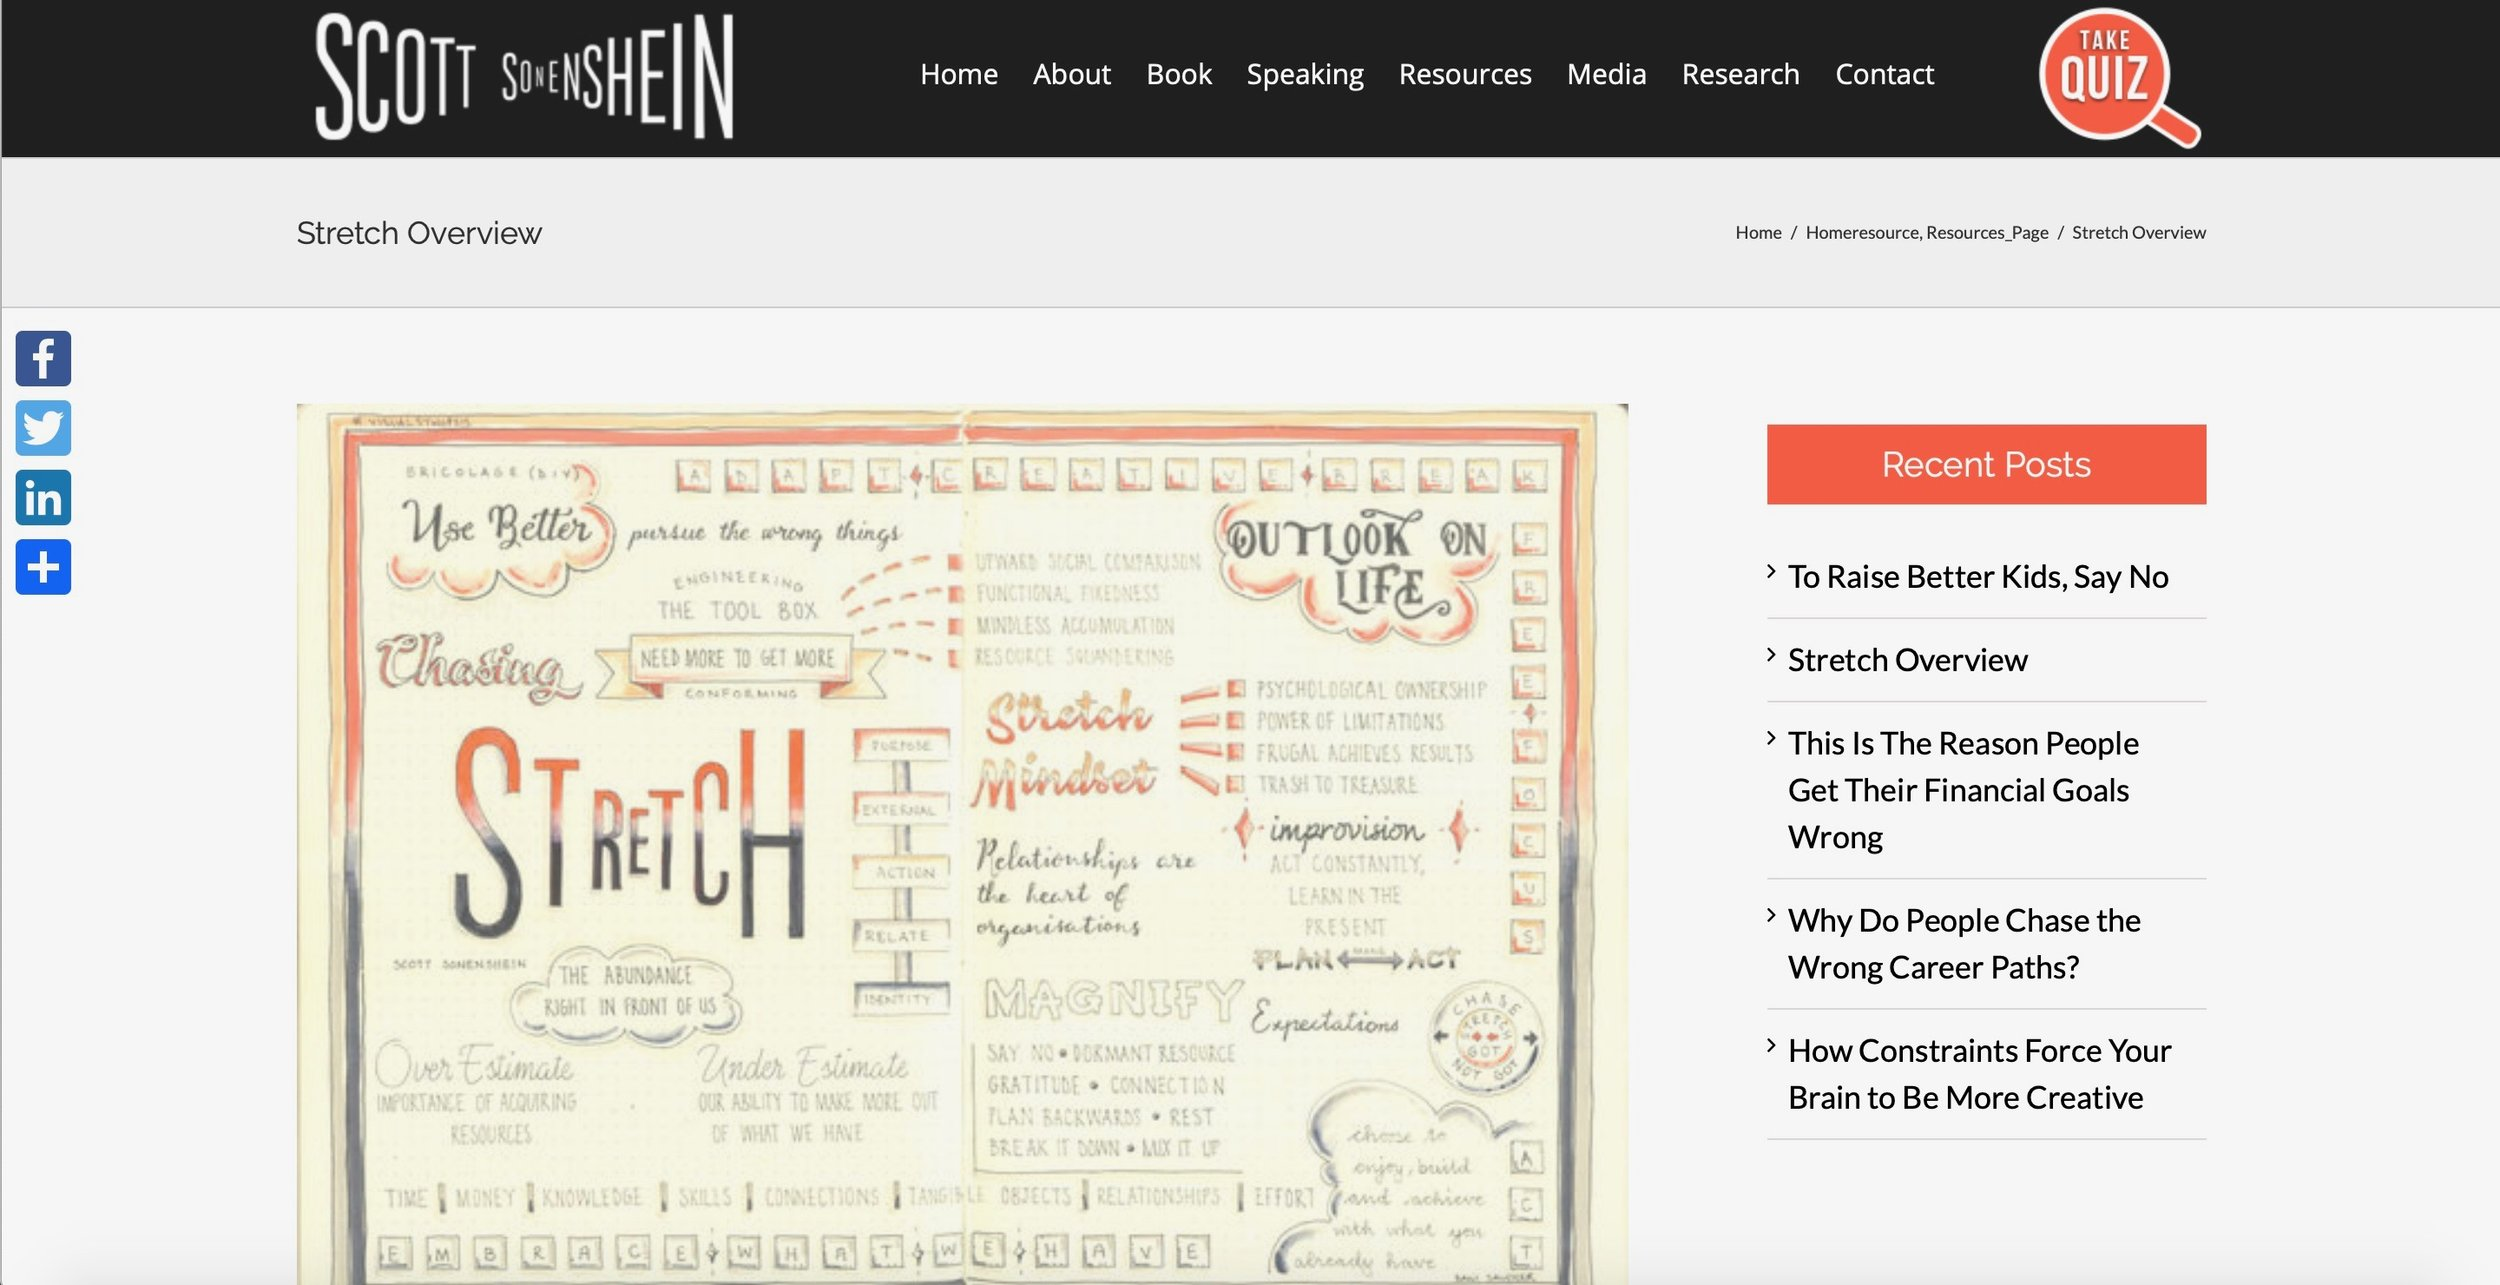 The  Stretch VS  is featured on it's authors website Scott Sonenshein. This piece has been updated